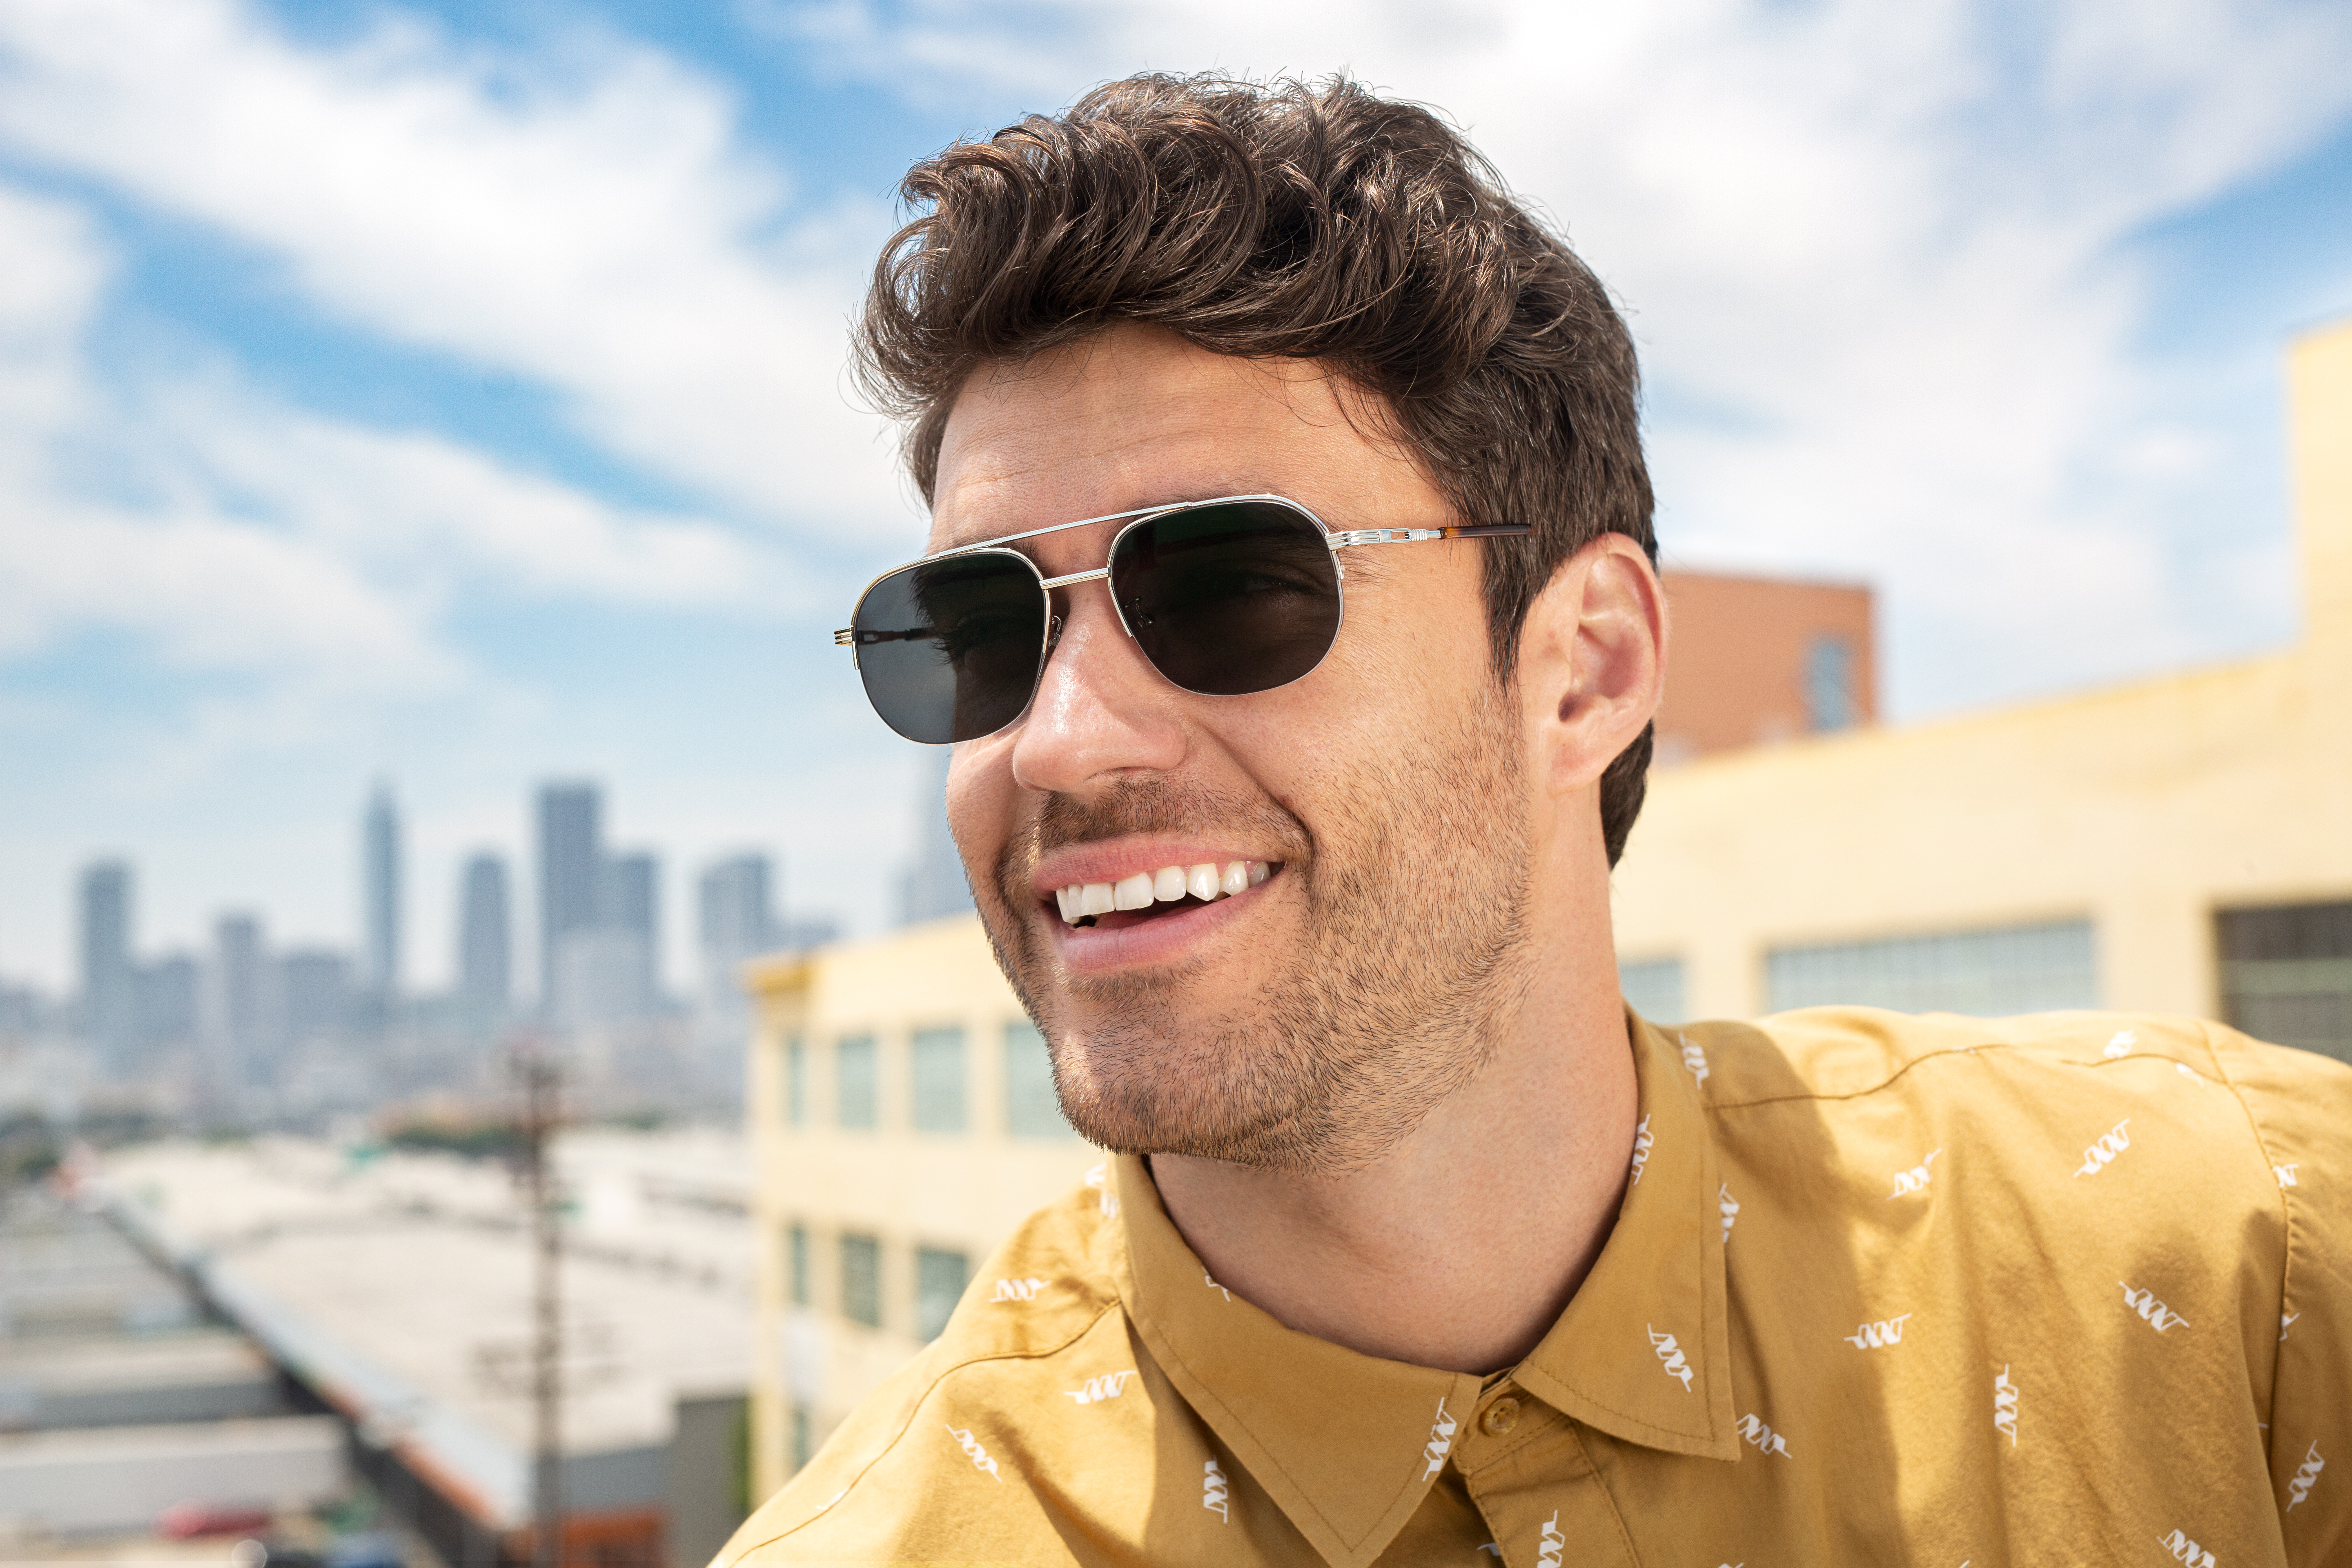 A man wearing prescription sunglasses with a city in the background